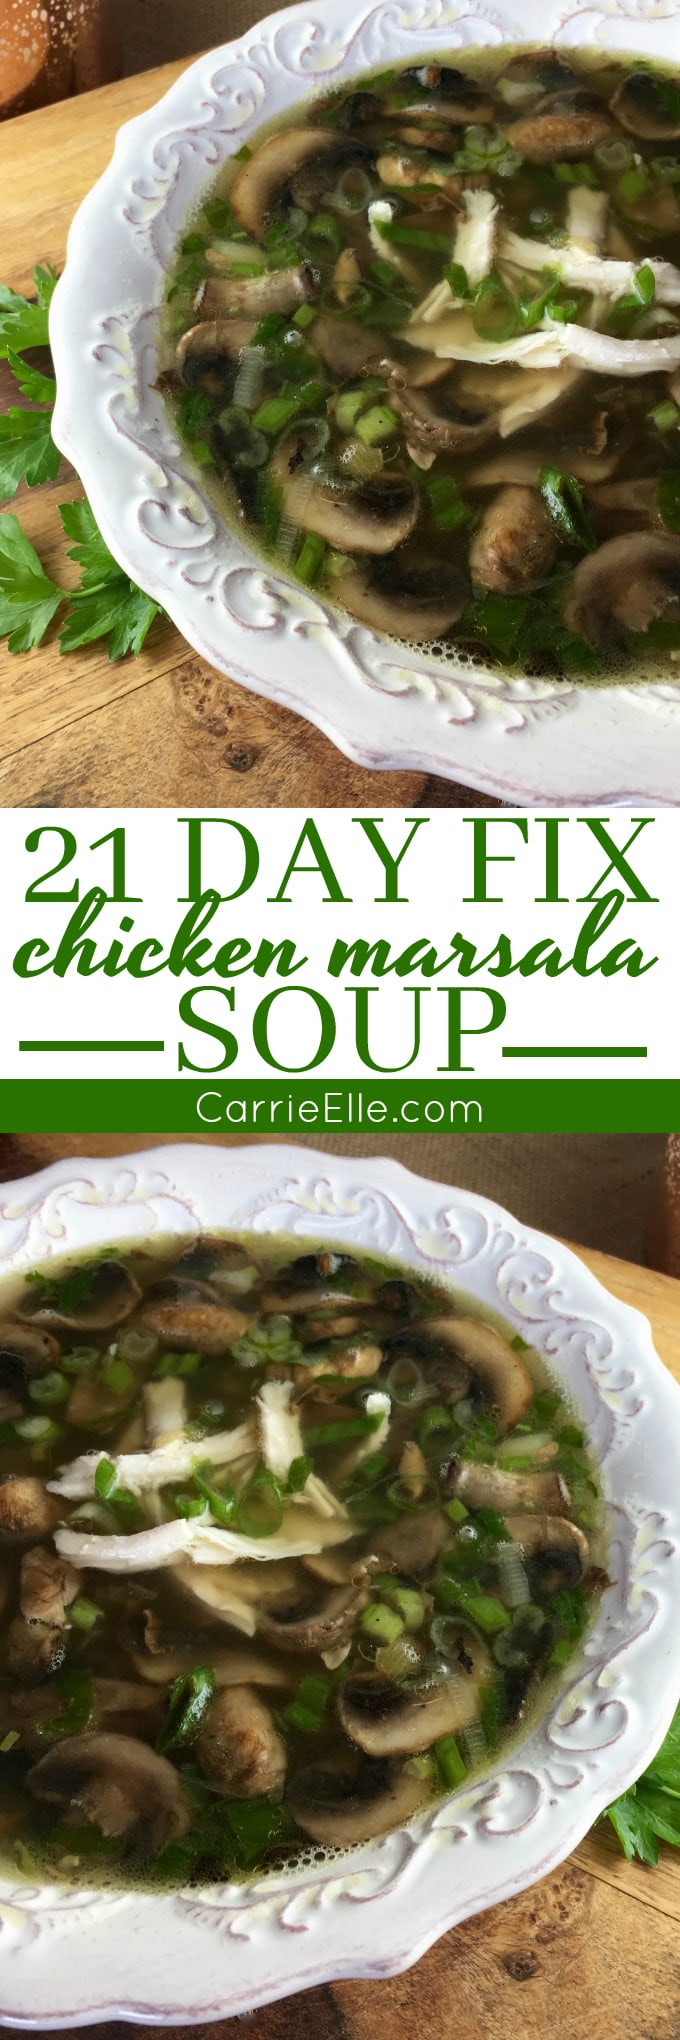 21 Day Fix Chicken Marsala Soup